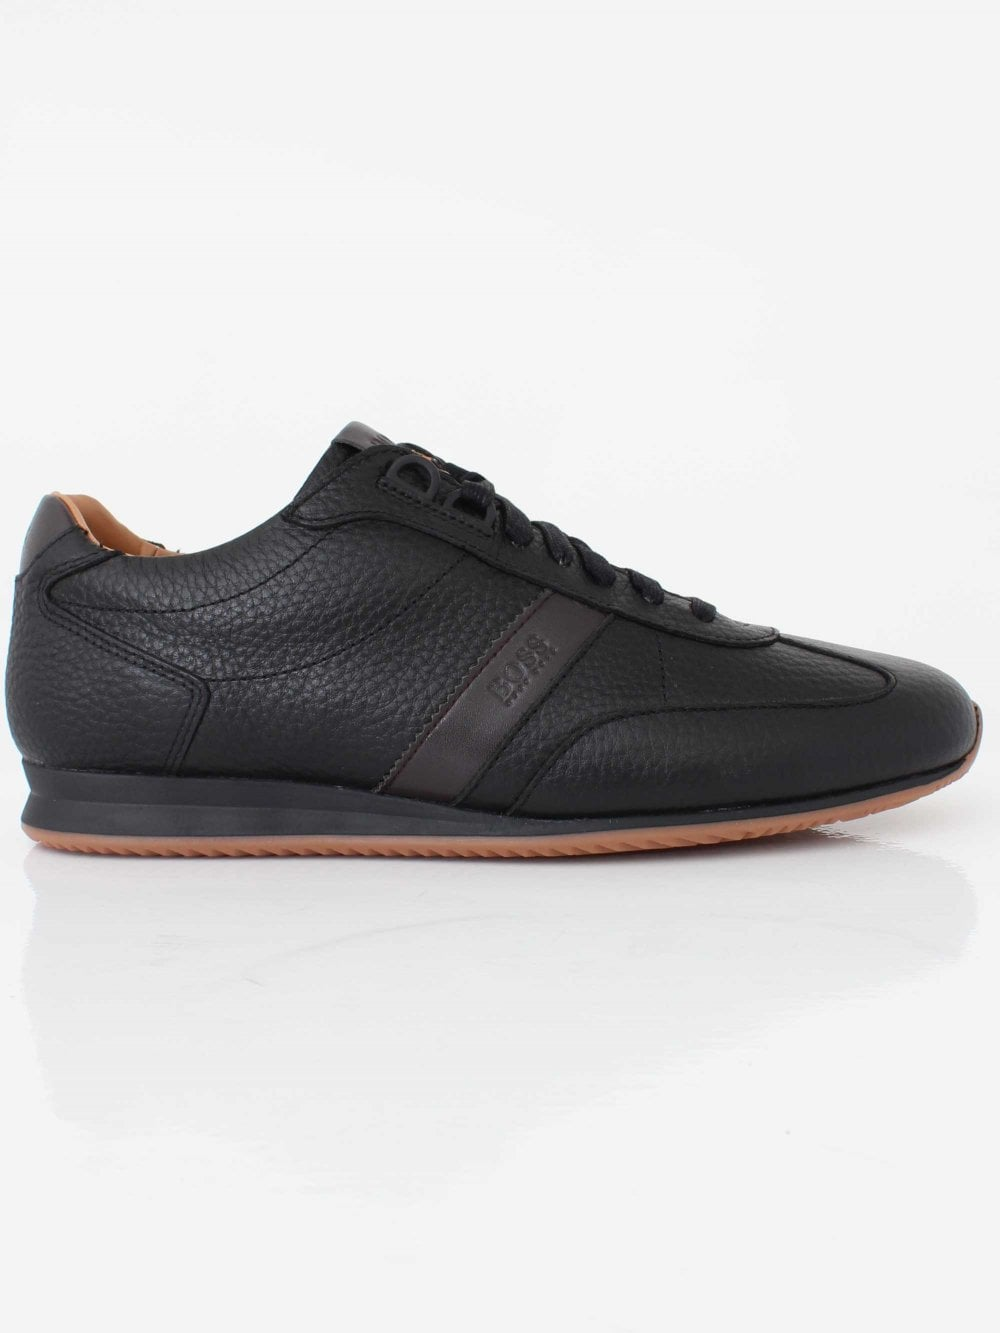 Hugo Boss Orland Low Trainer in Black